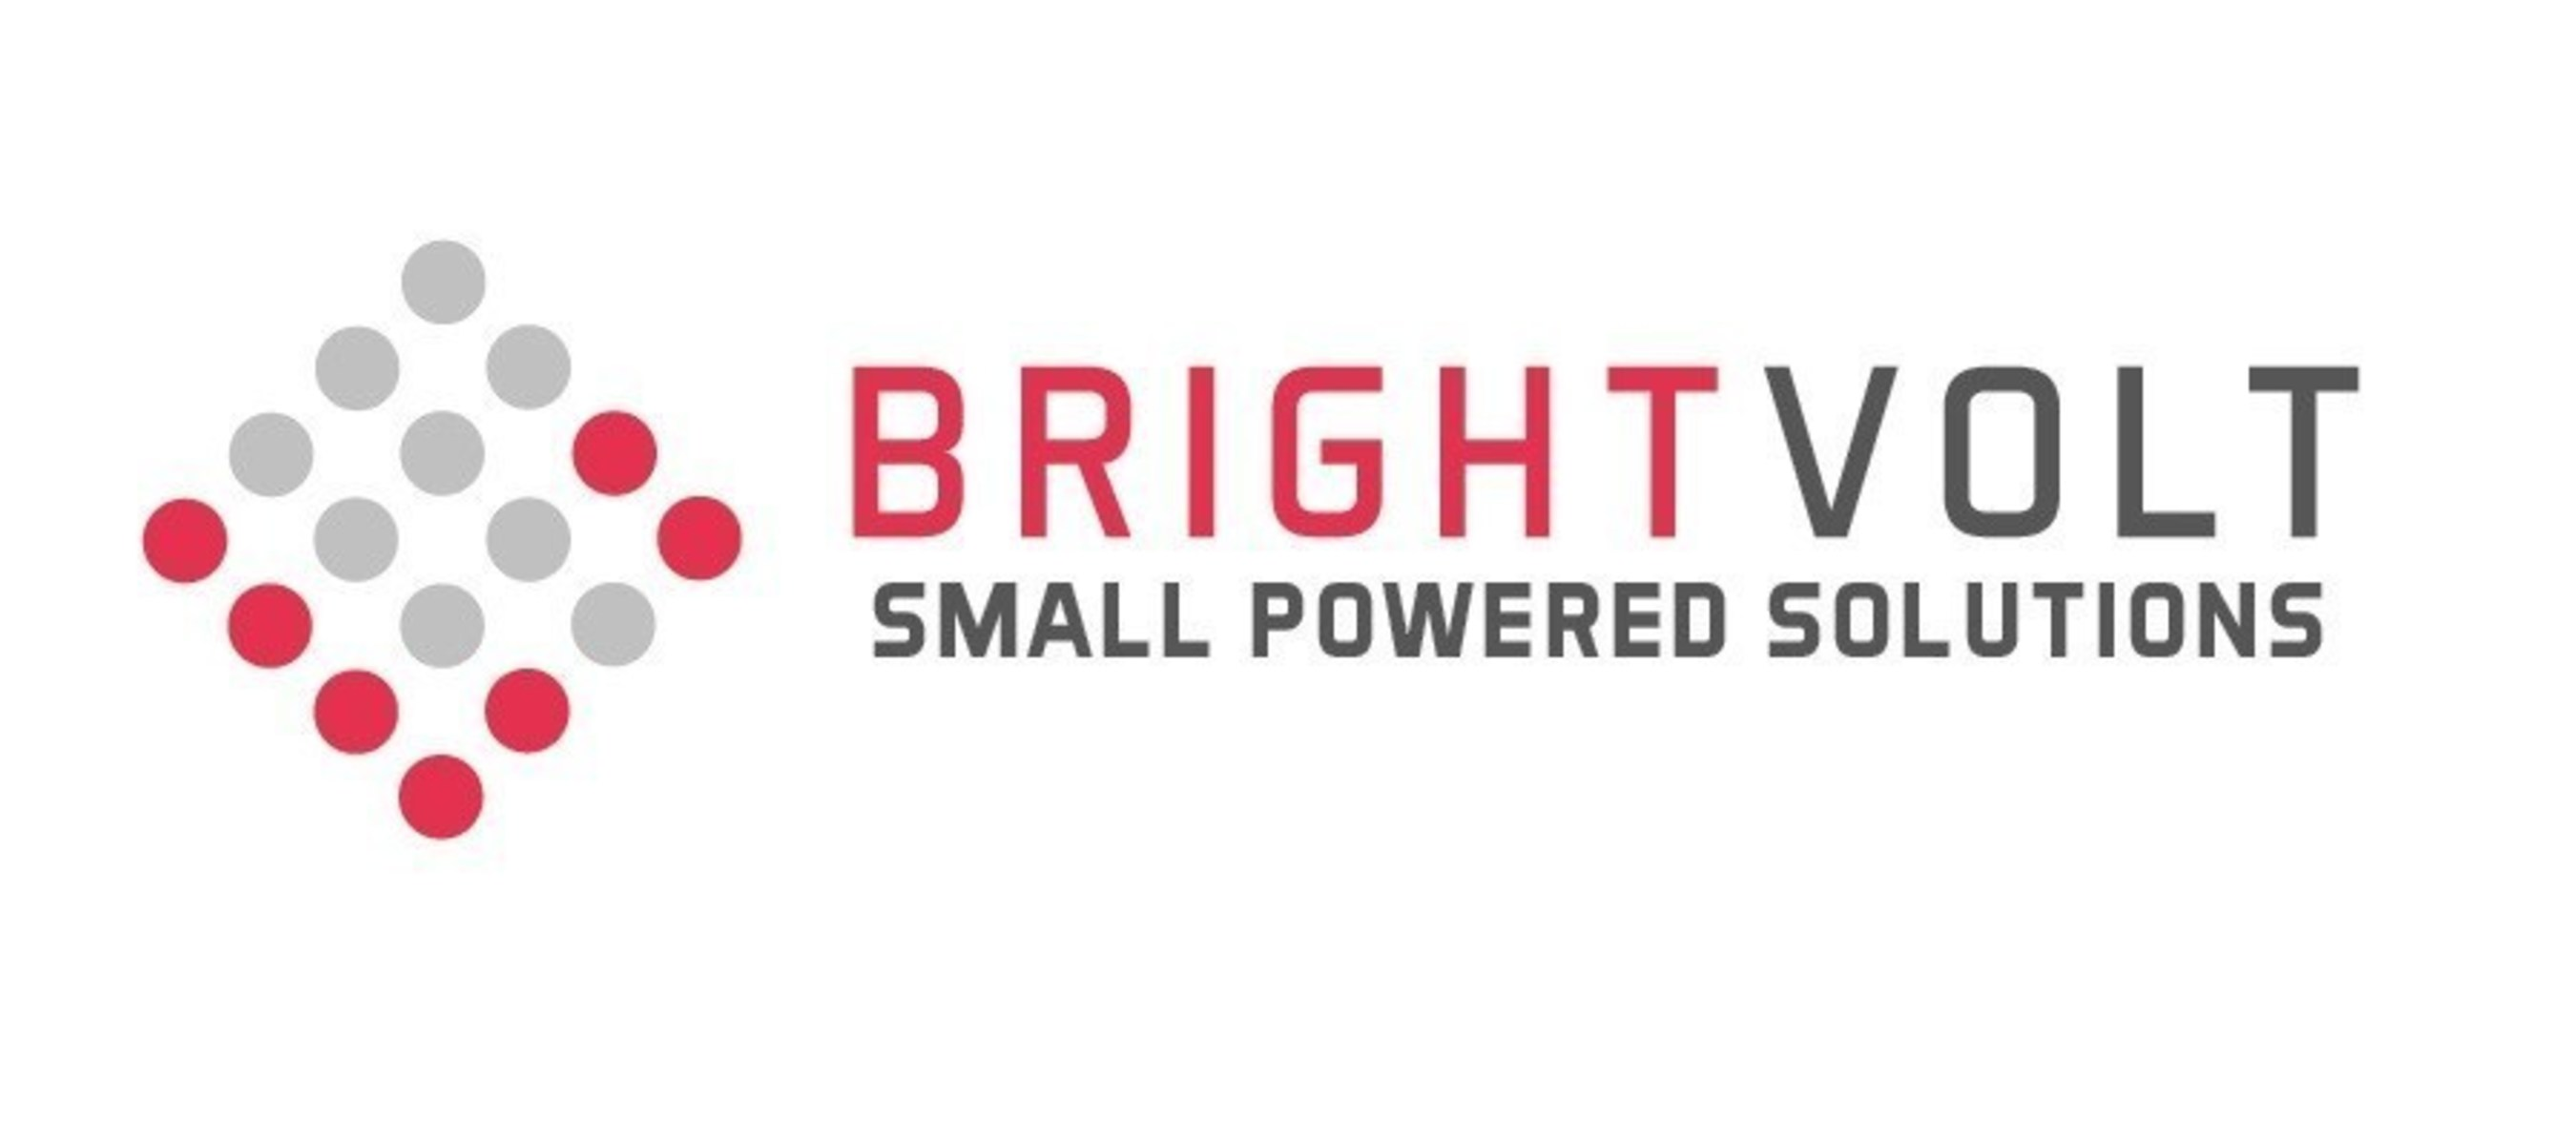 BrightVolt is the global leader in the design, development and scale manufacturing of ultra-thin film batteries.